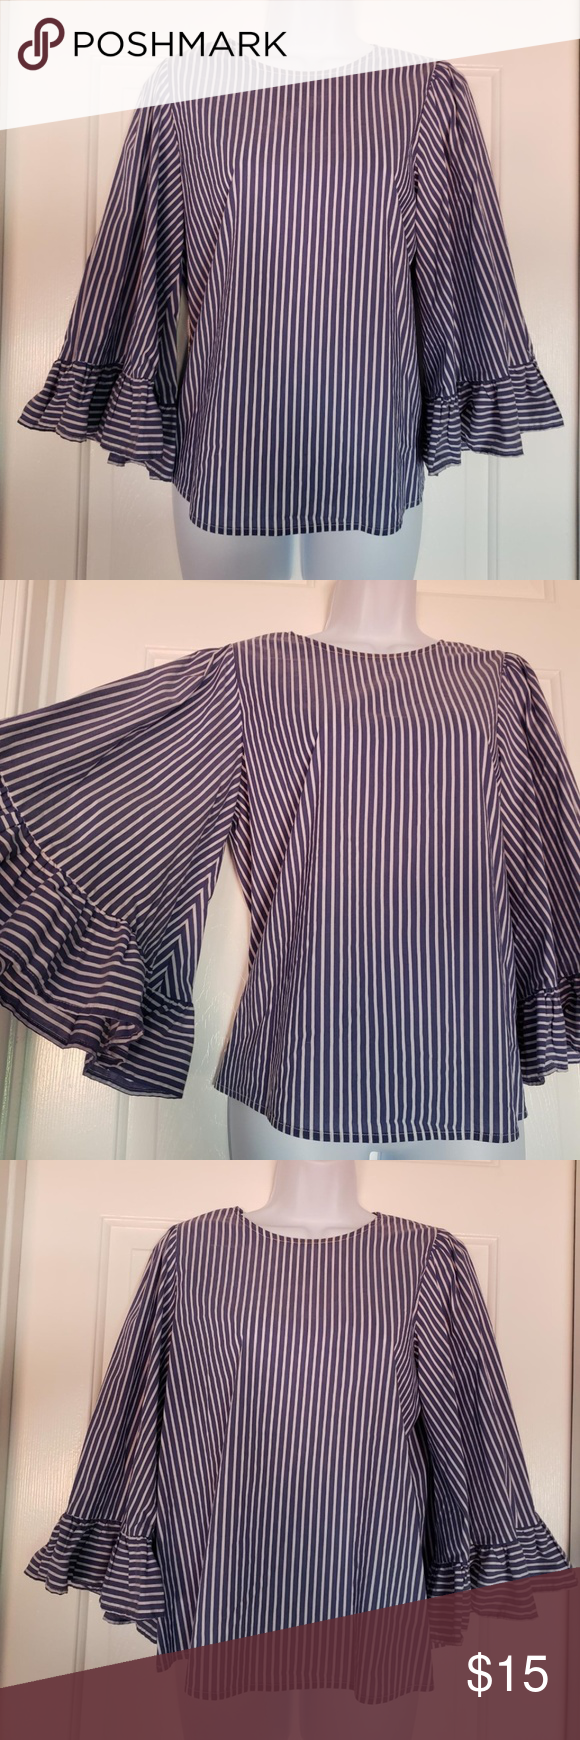 Paraphrase Striped Navy Bell Sleeve Crew Neck Top Blouse For Women Tops Custom Clothing